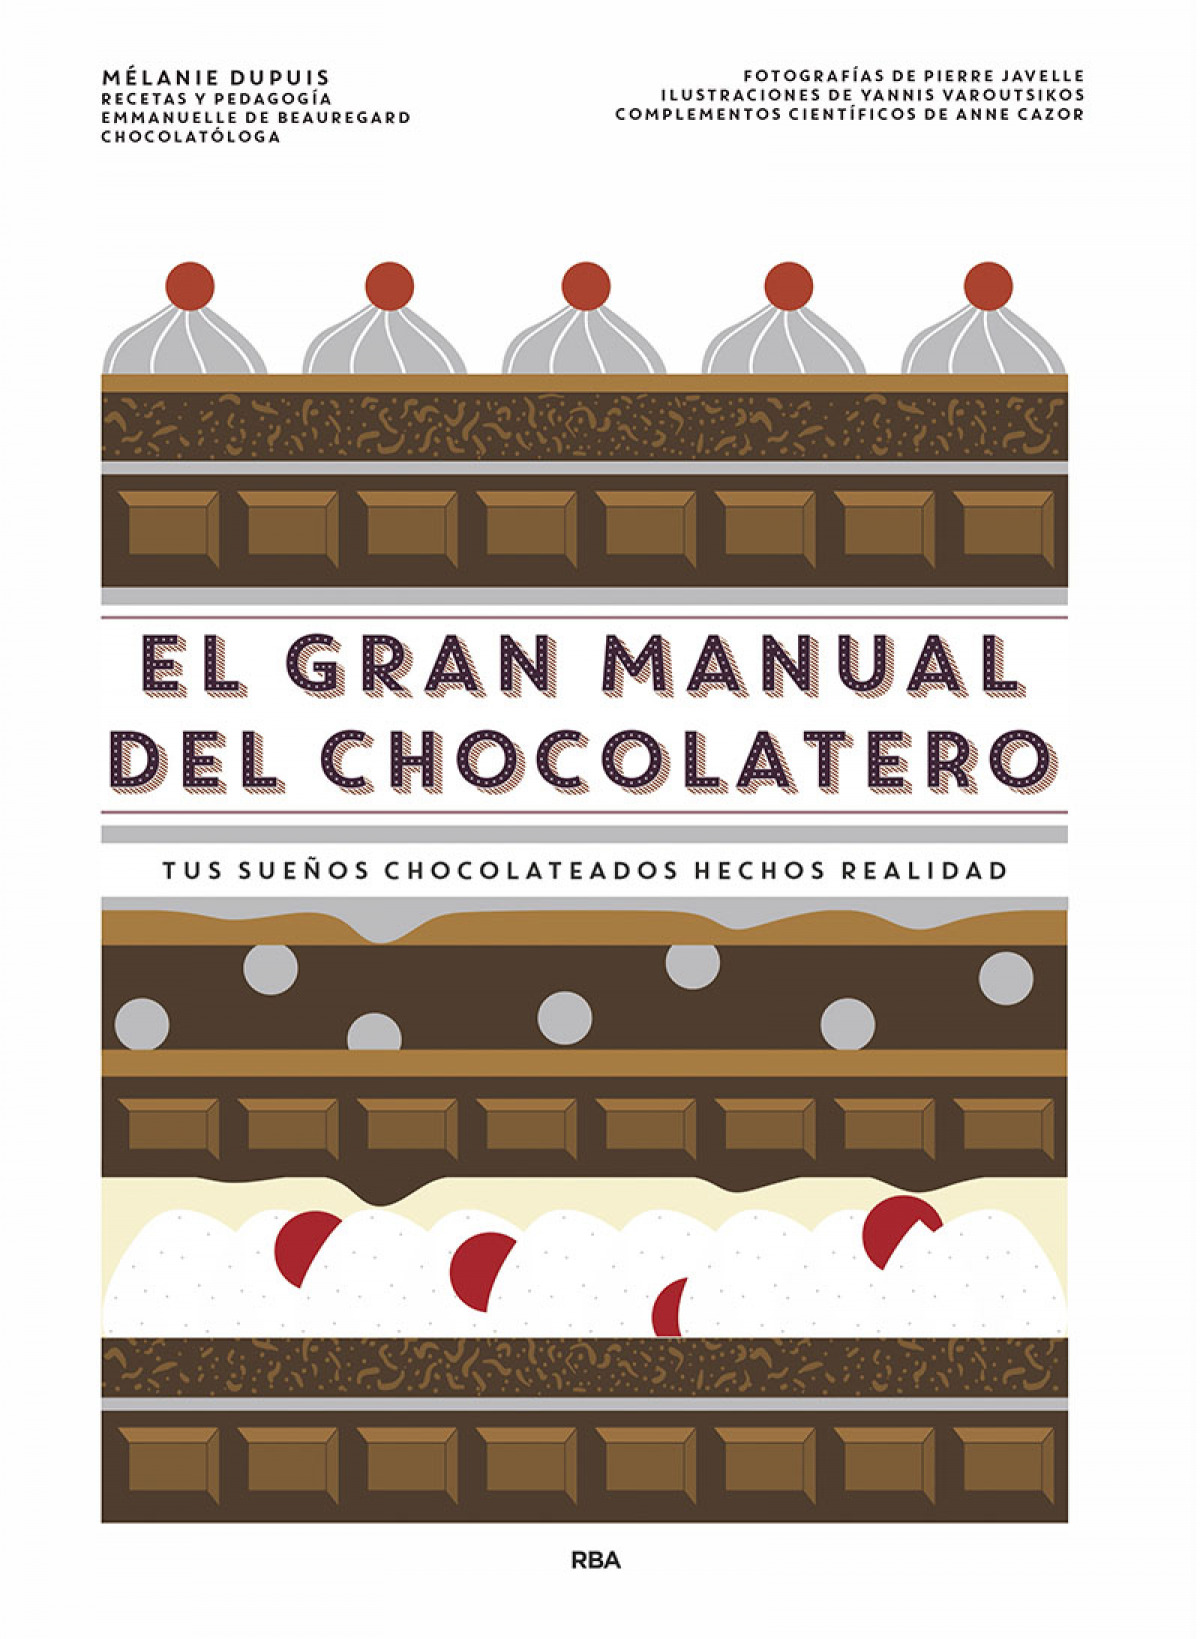 El gran manual del chocolatero 9788491873563